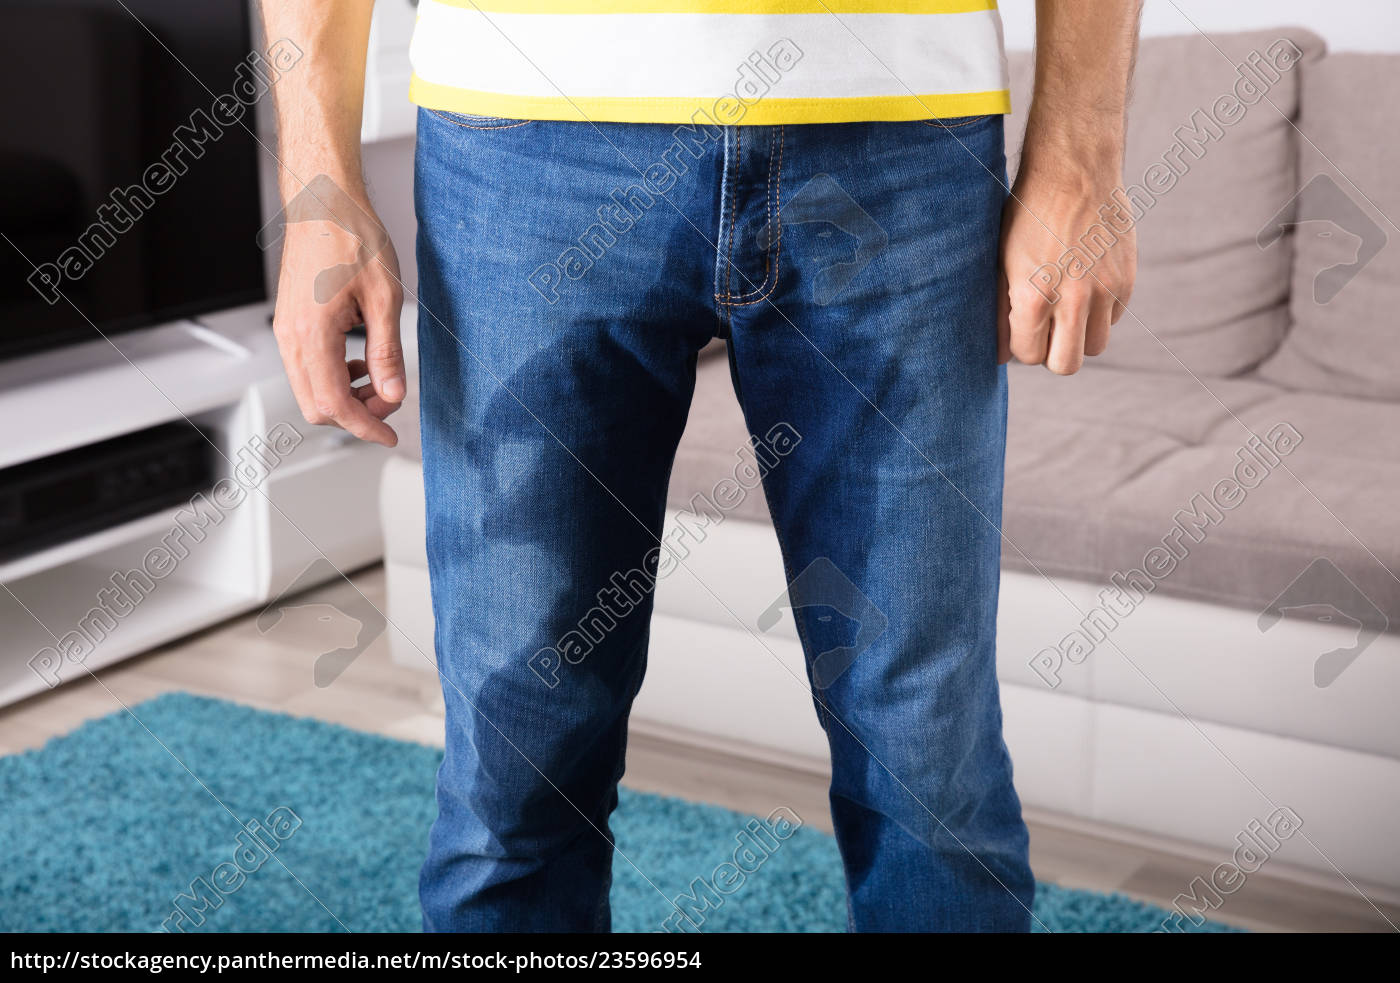 low, section, view, of, person's, wet - 23596954